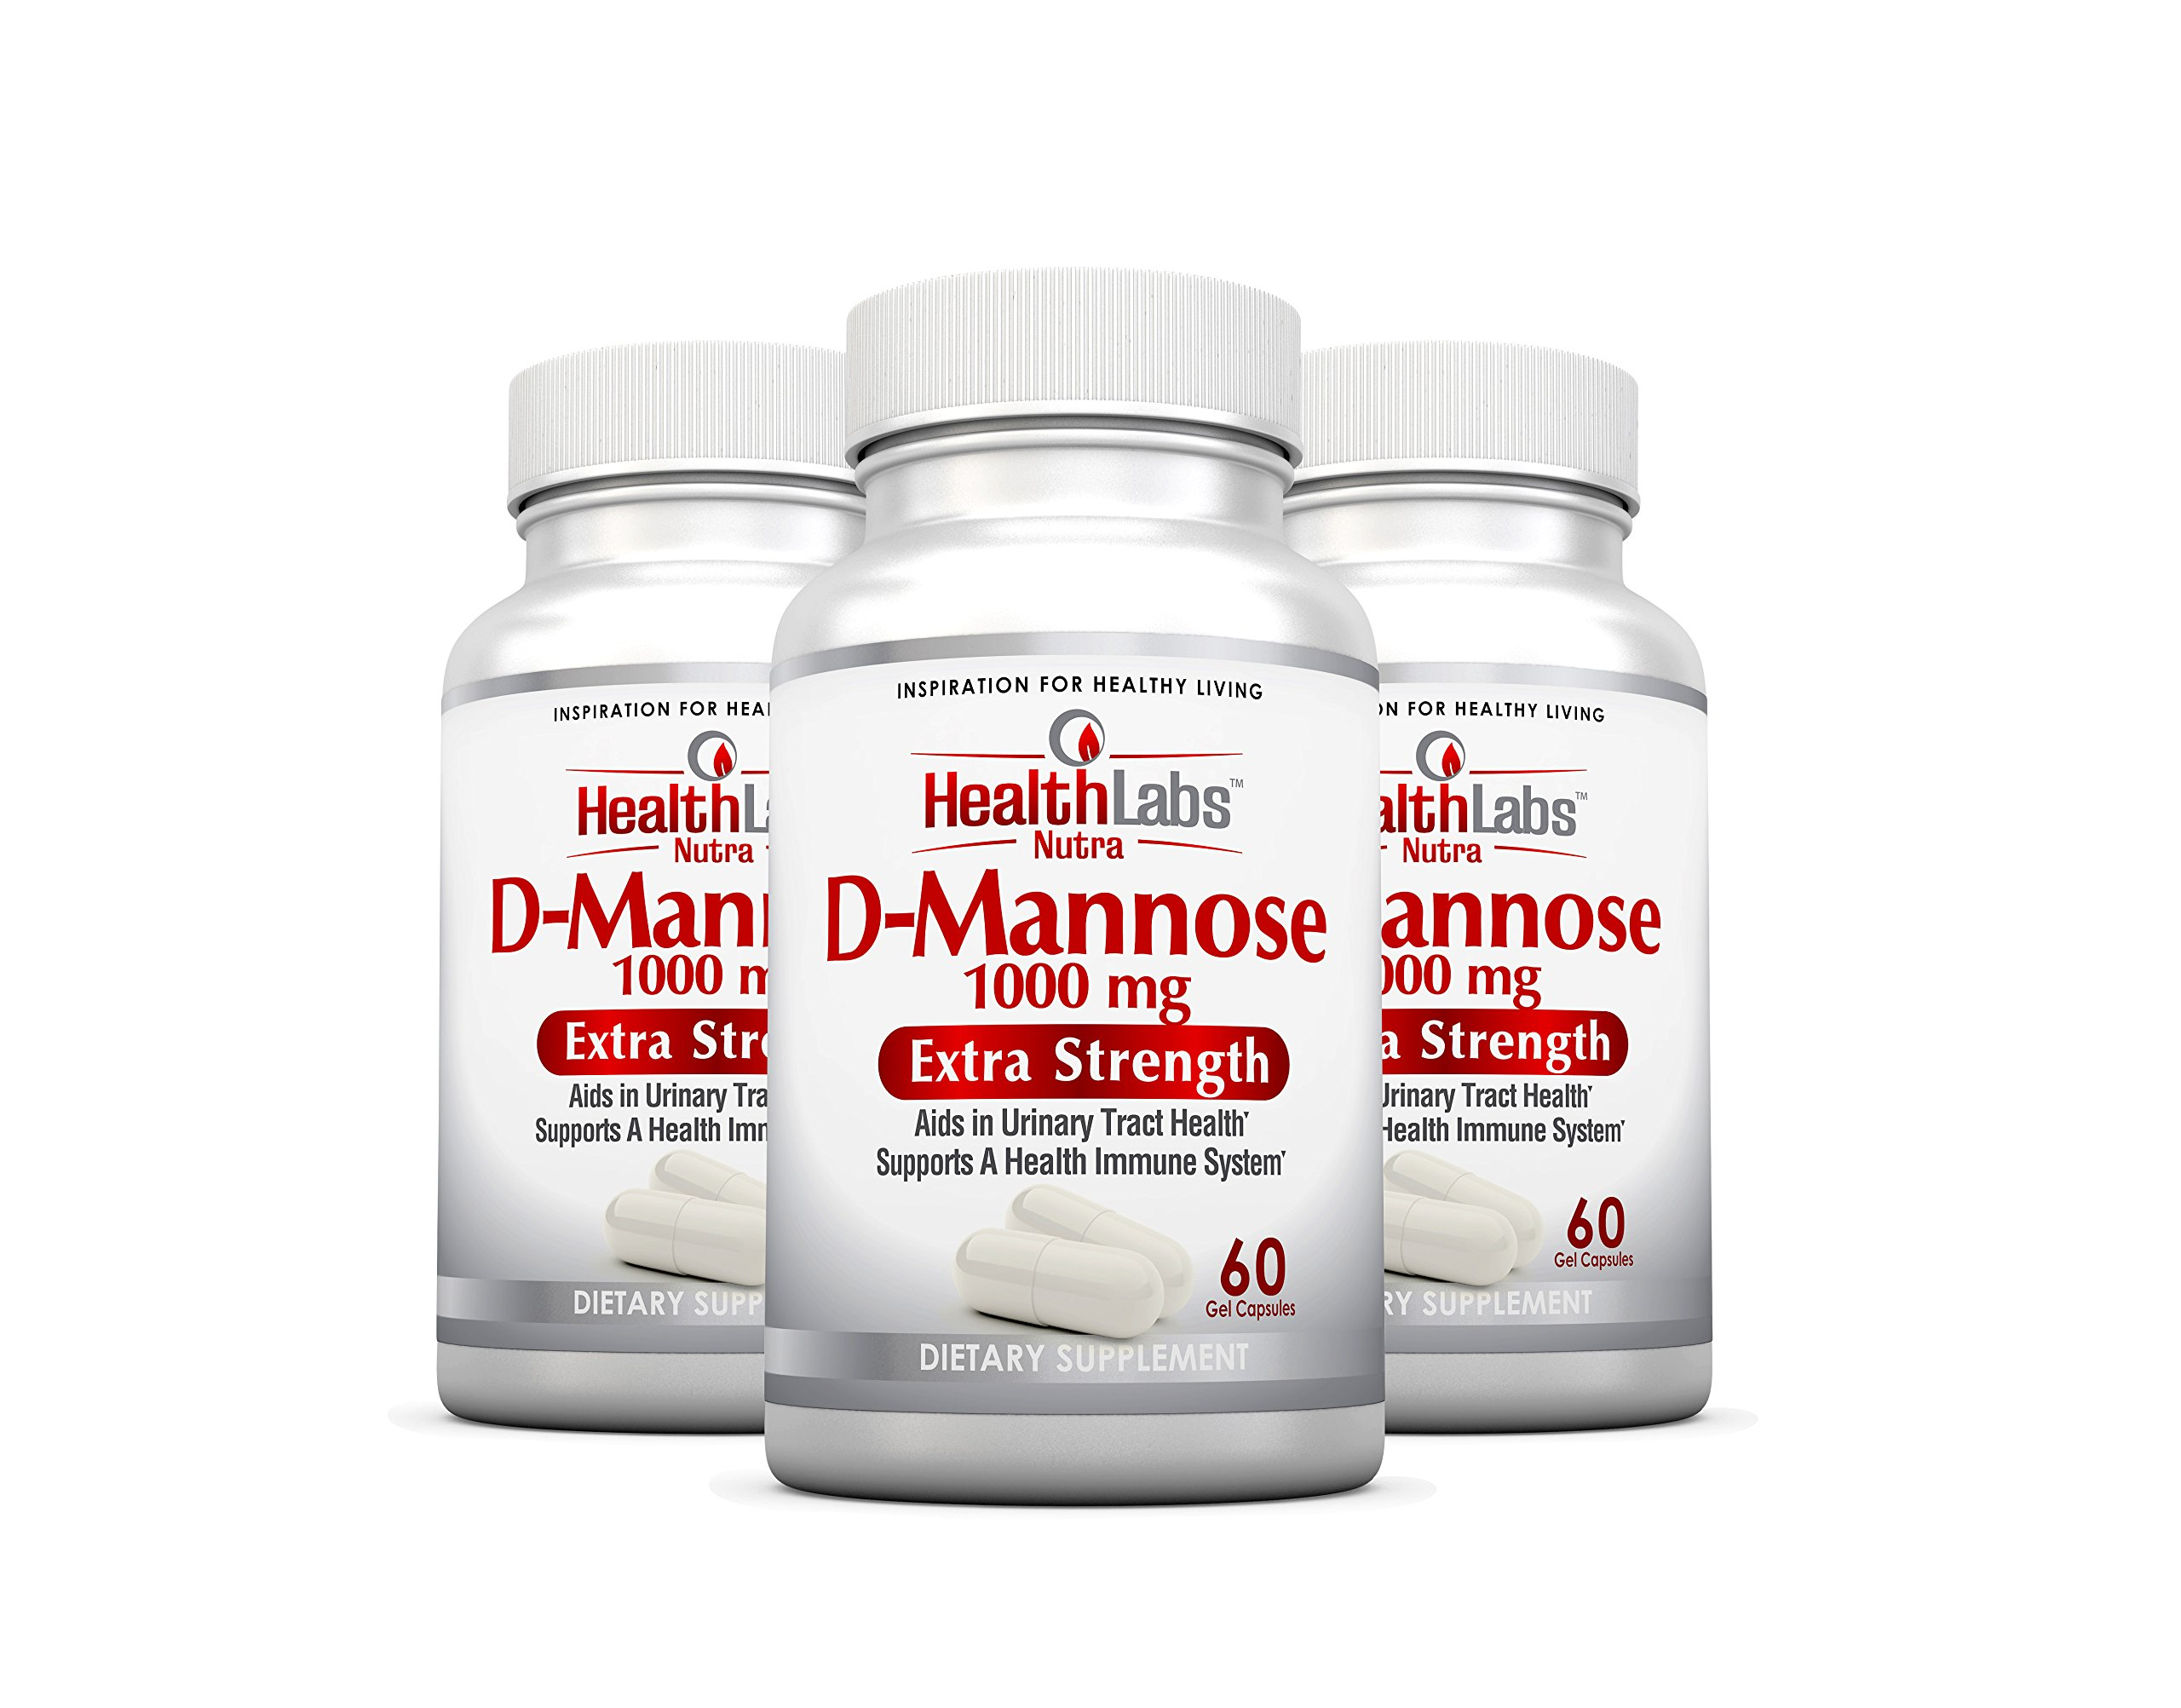 Health Labs Nutra D-Mannose 3-Month Supply 1,000mg - Fight Urinary Tract Infections & Promote a Healthy Bladder (Pack of 3) by Health Labs Nutra